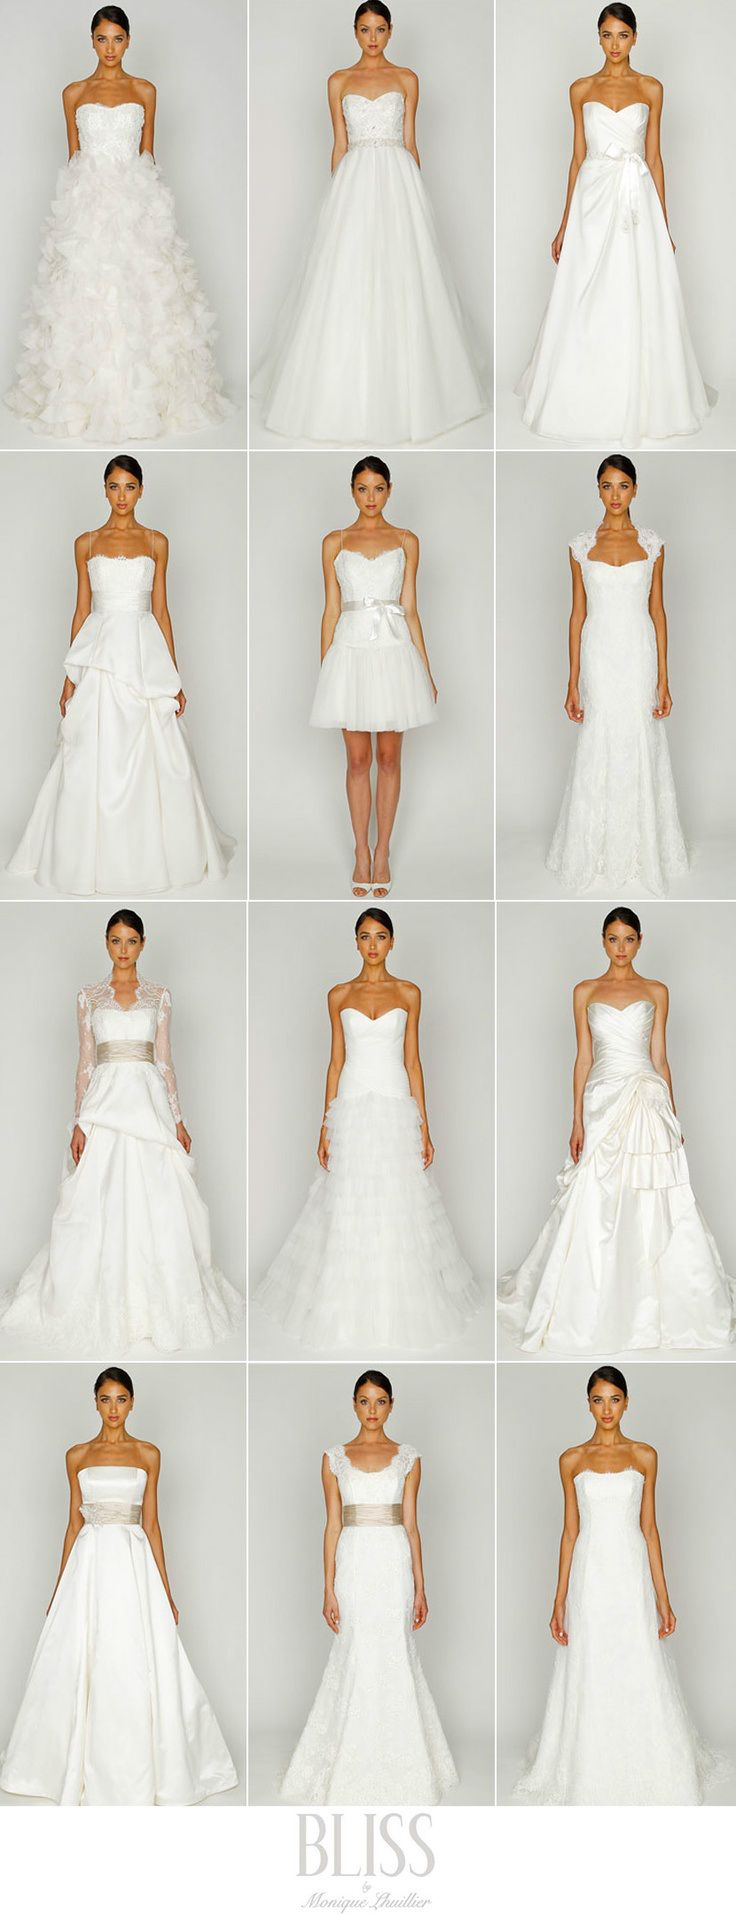 Wedding dress shapes u good guide to look at before you go hunting